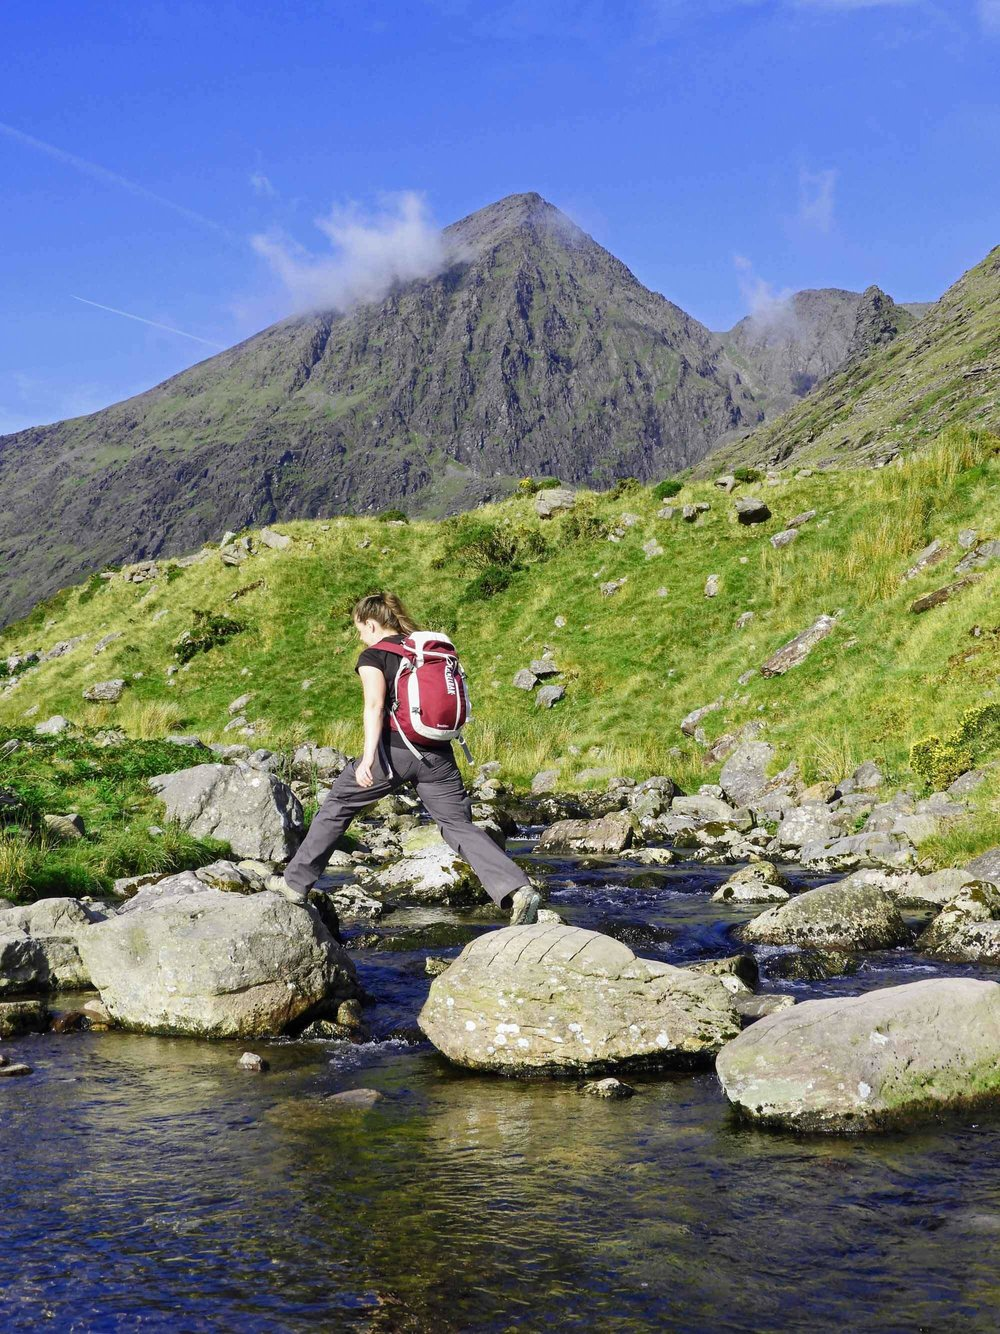 ireland-carrauntoohil-highest-mountain-peak-stream-crossing.jpg